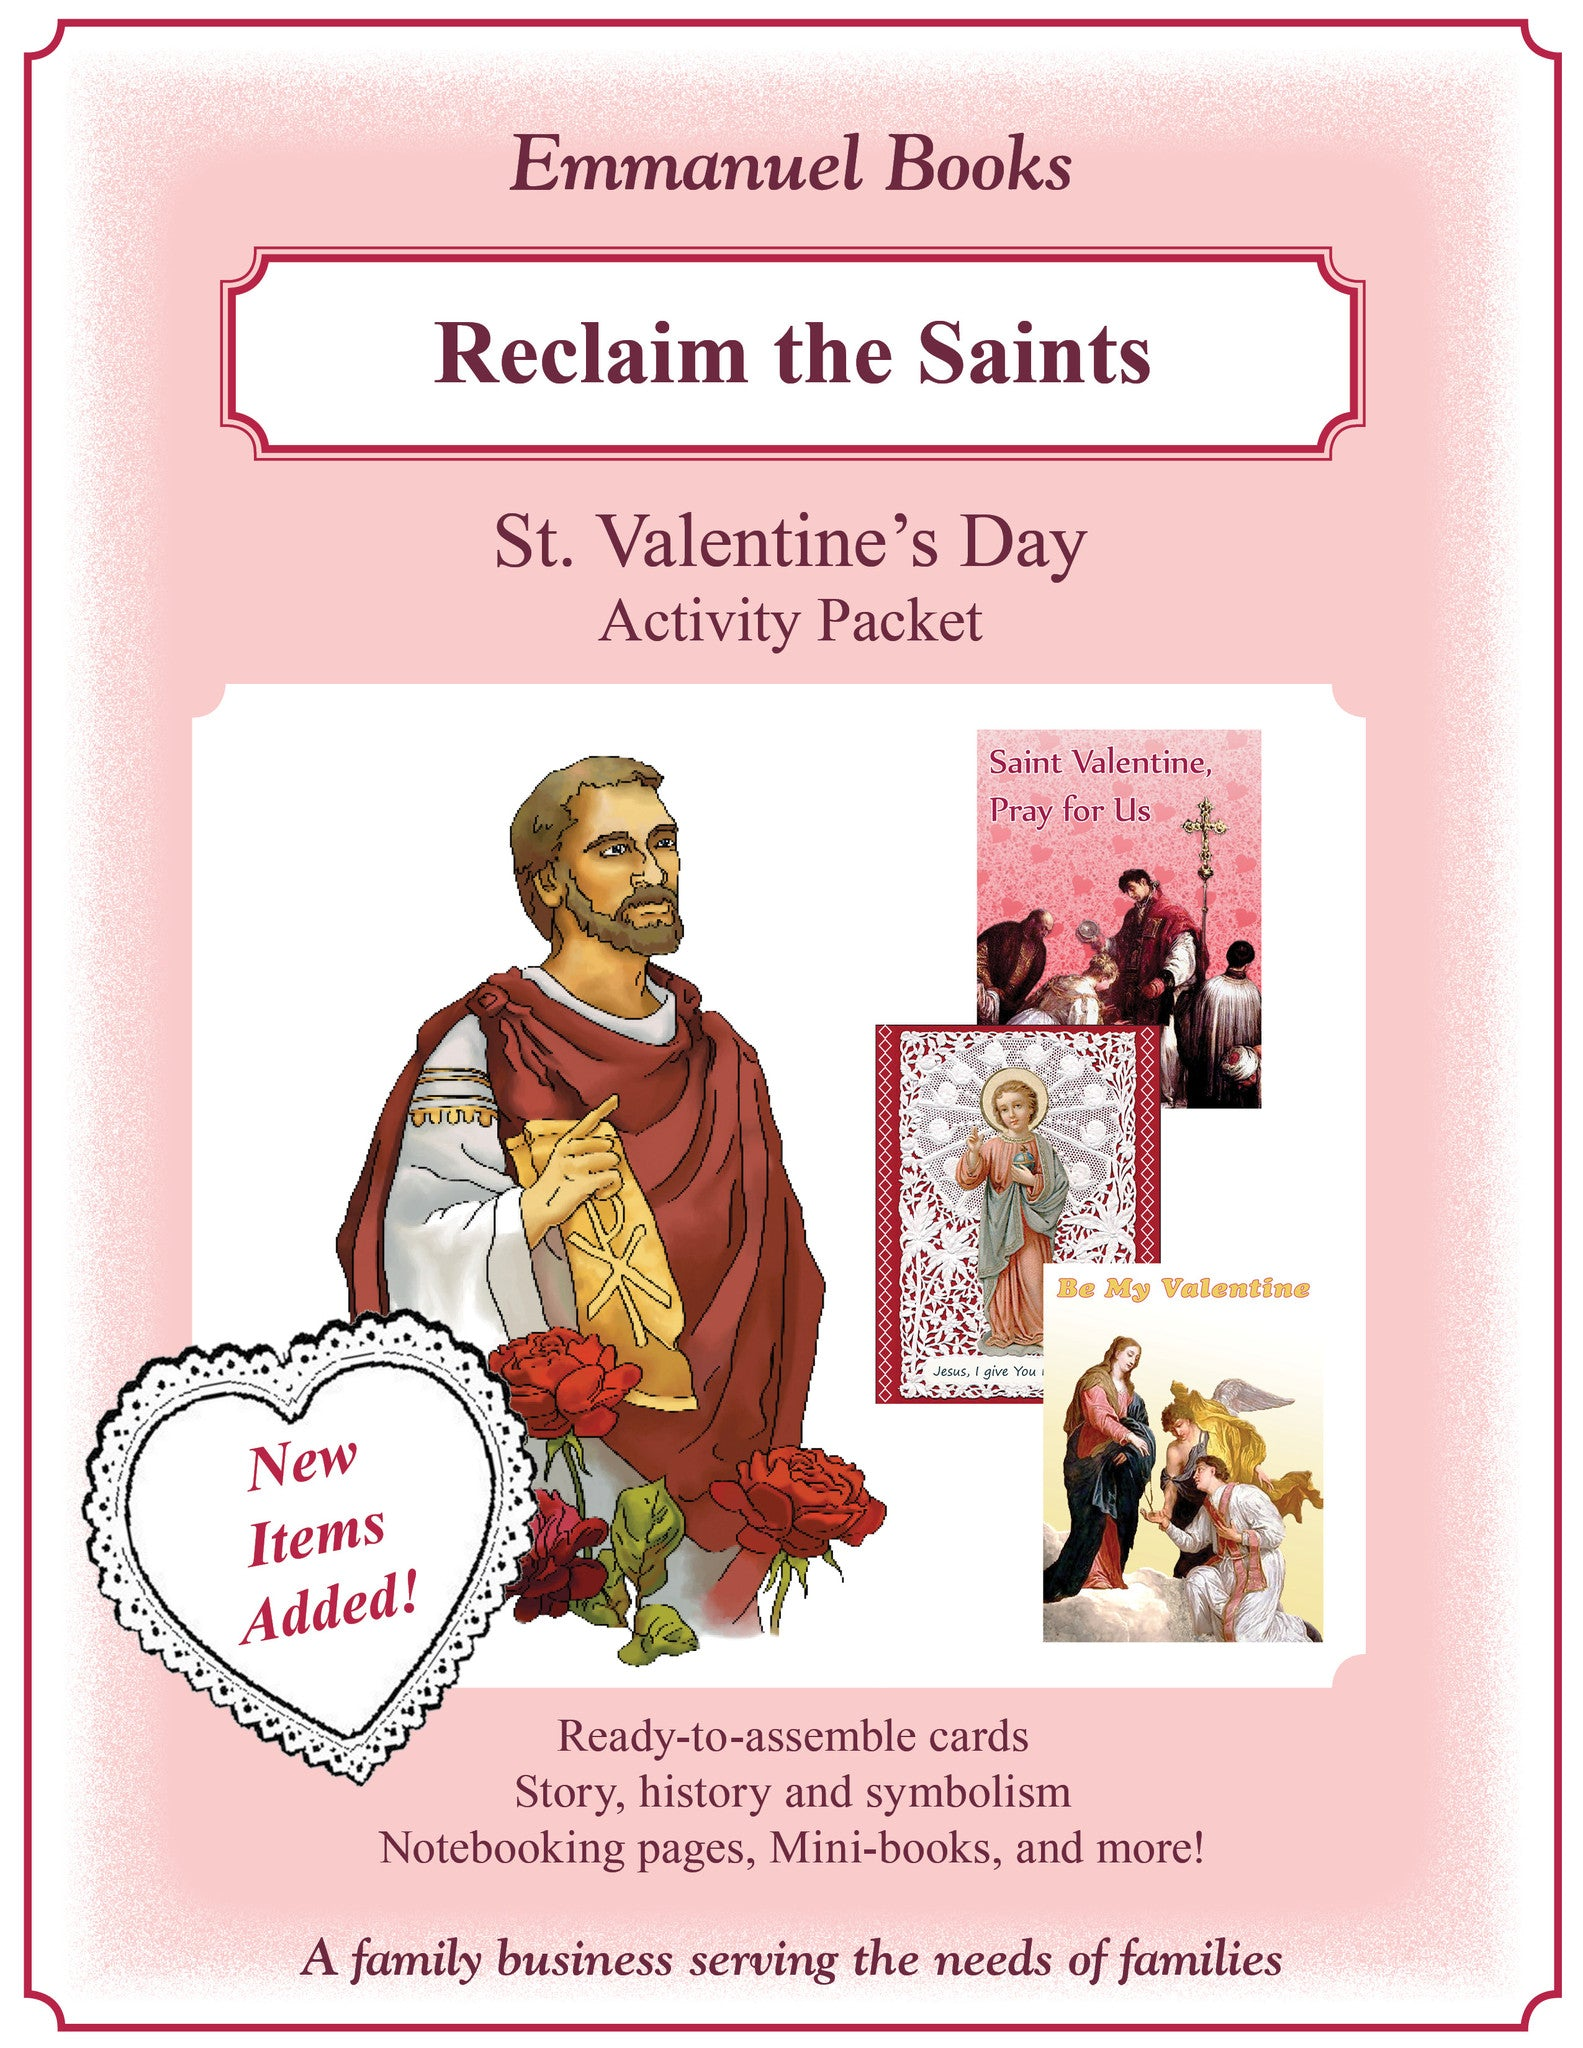 2016 - NEW EXPANDED - St. Valentine Activity Packet Download - Emmanuel Books